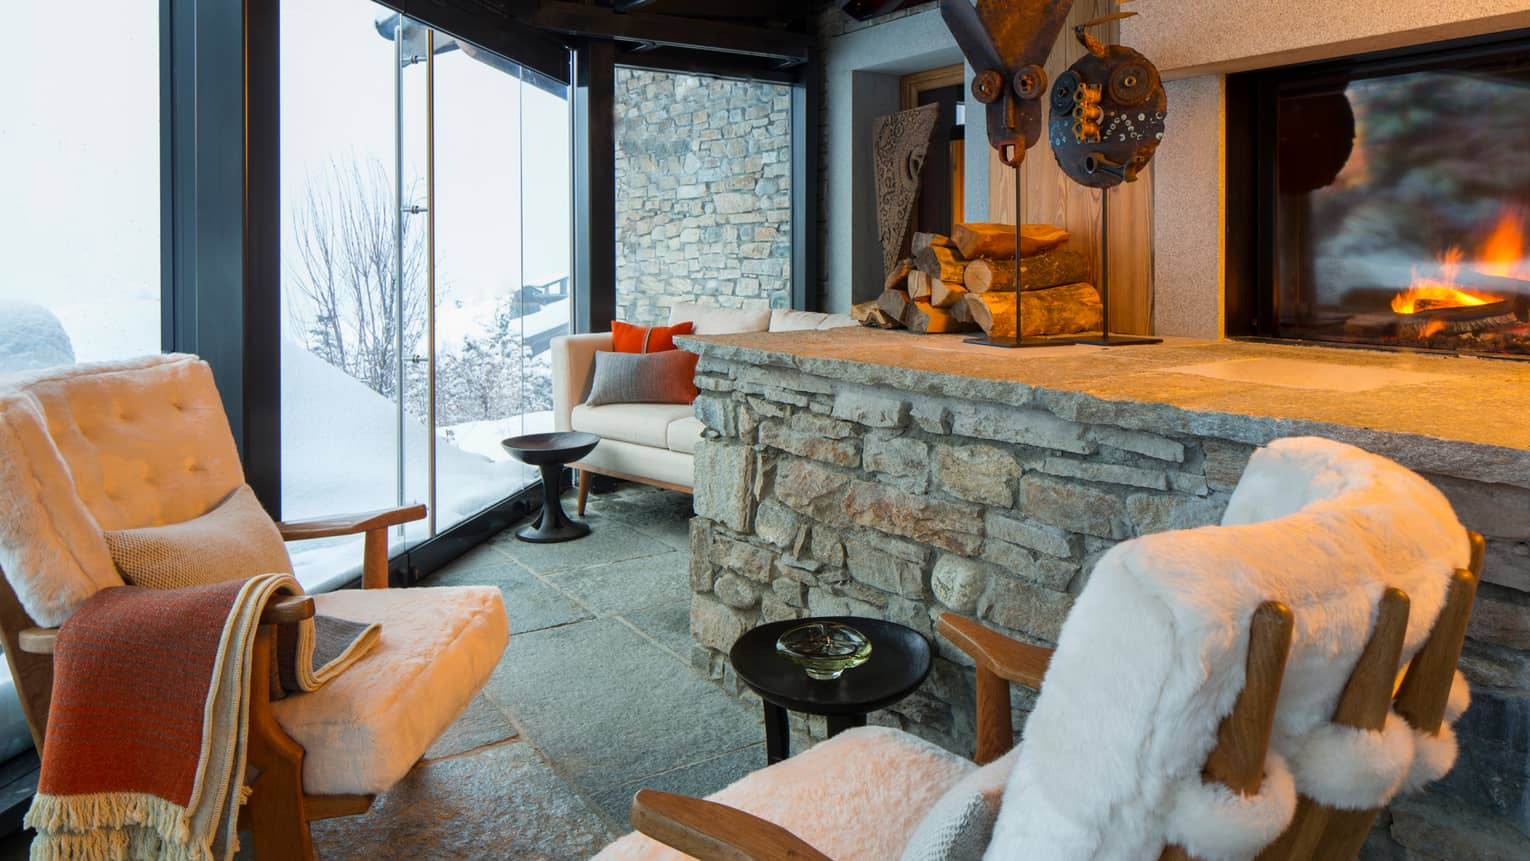 Cigar Room plush white lounge chairs by stone ledge with logs, sculptures, gas fireplace